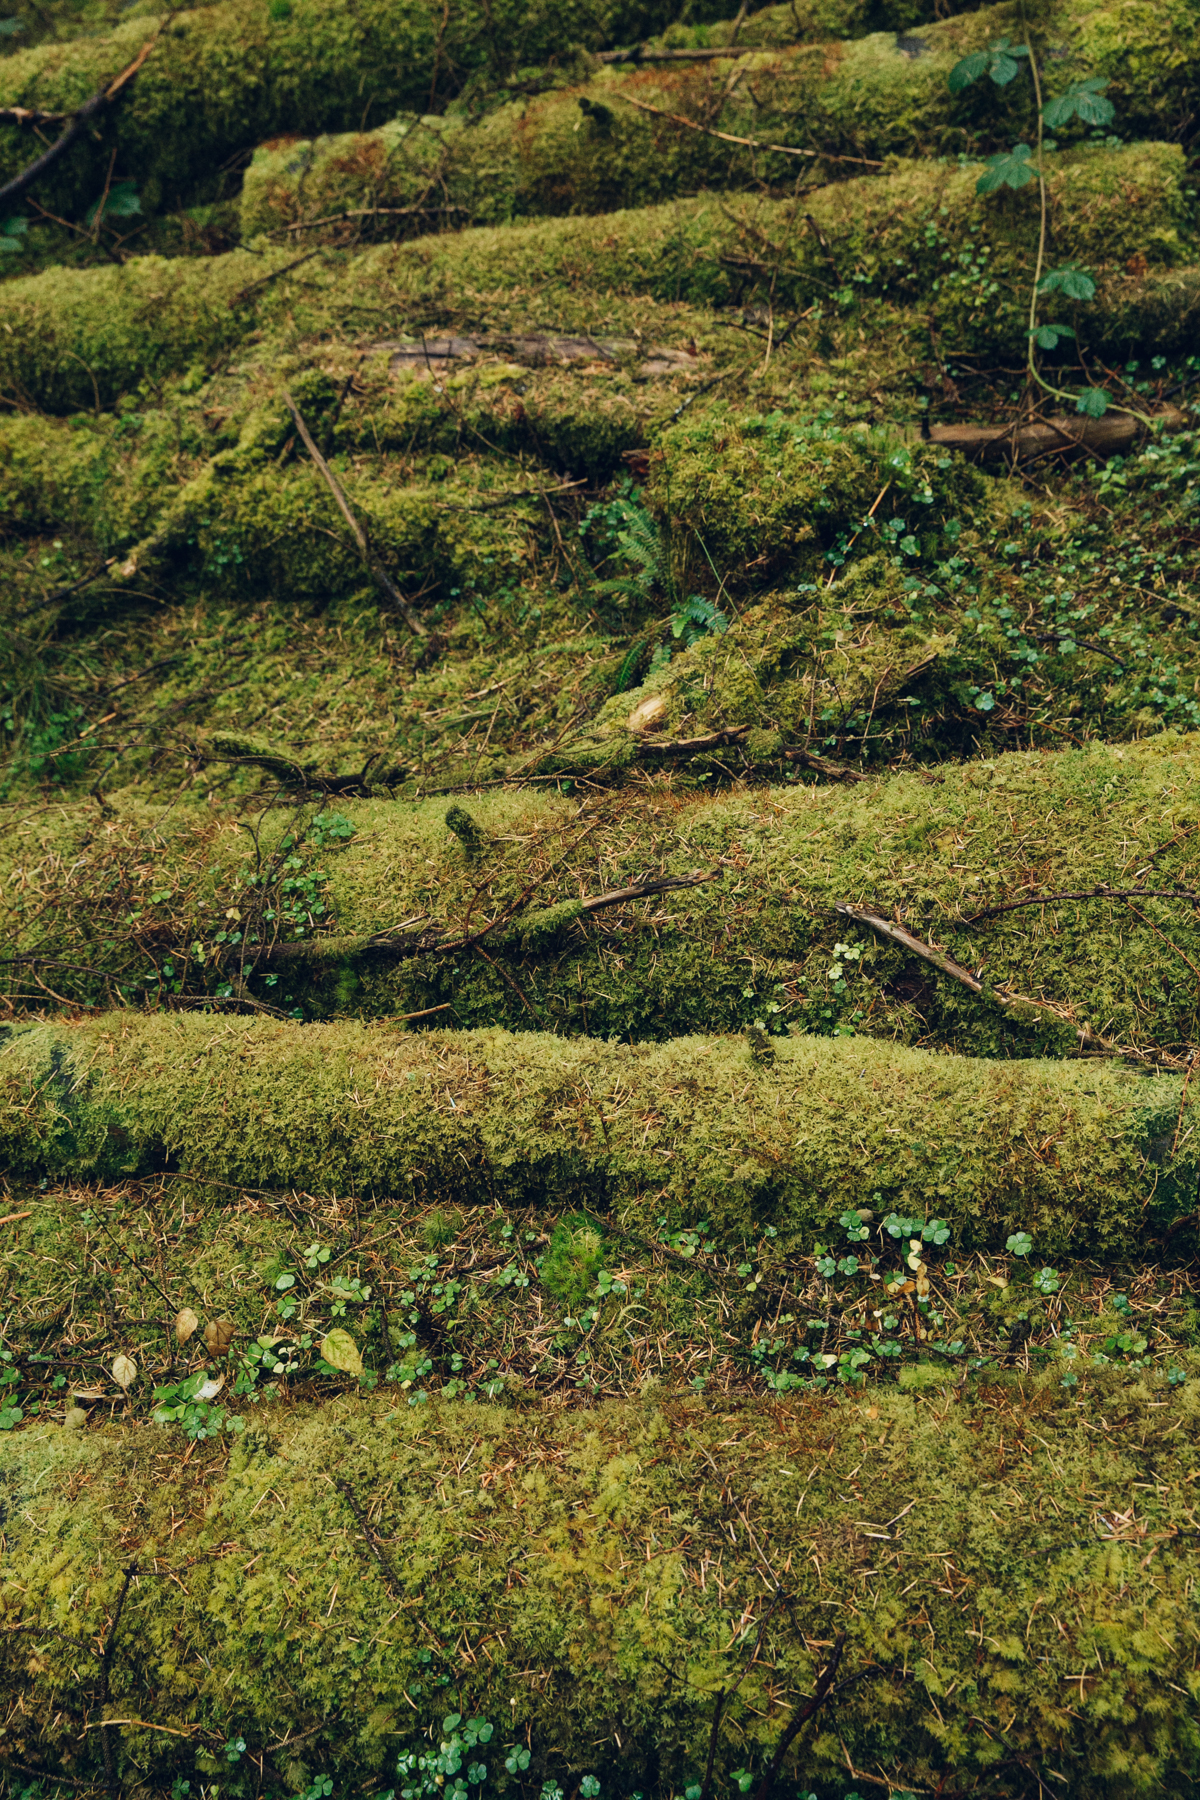 Green mossy woodland textures.